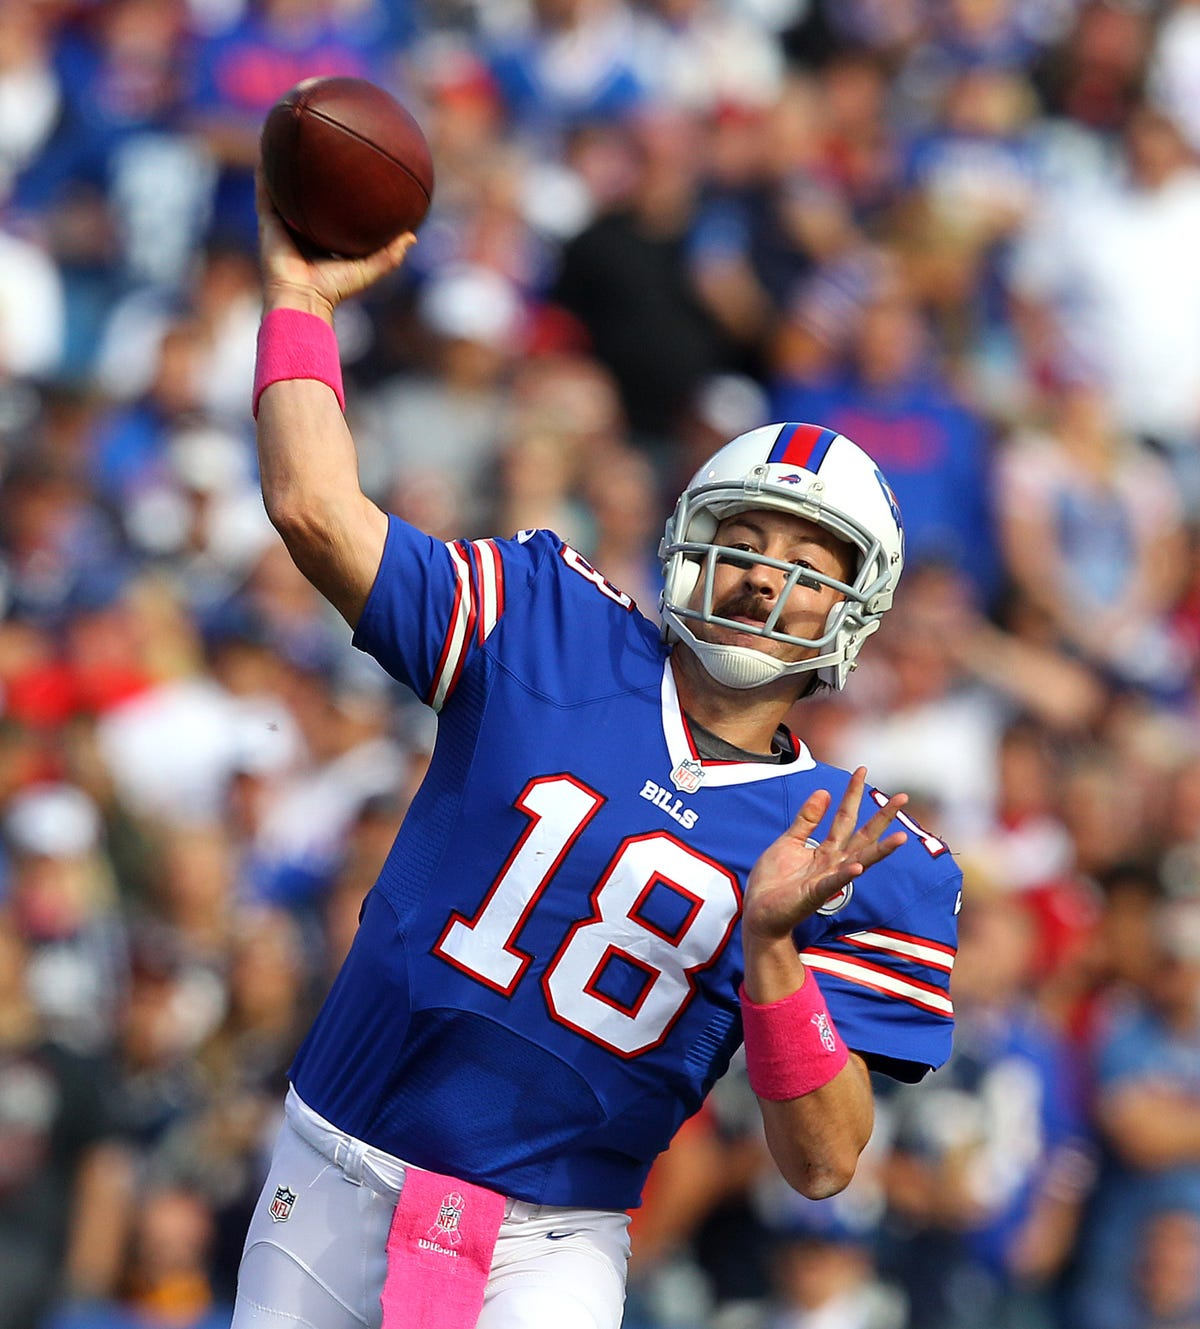 low priced f2bd7 acce8 Maiorana: Can Kyle Orton deliver in big spot?